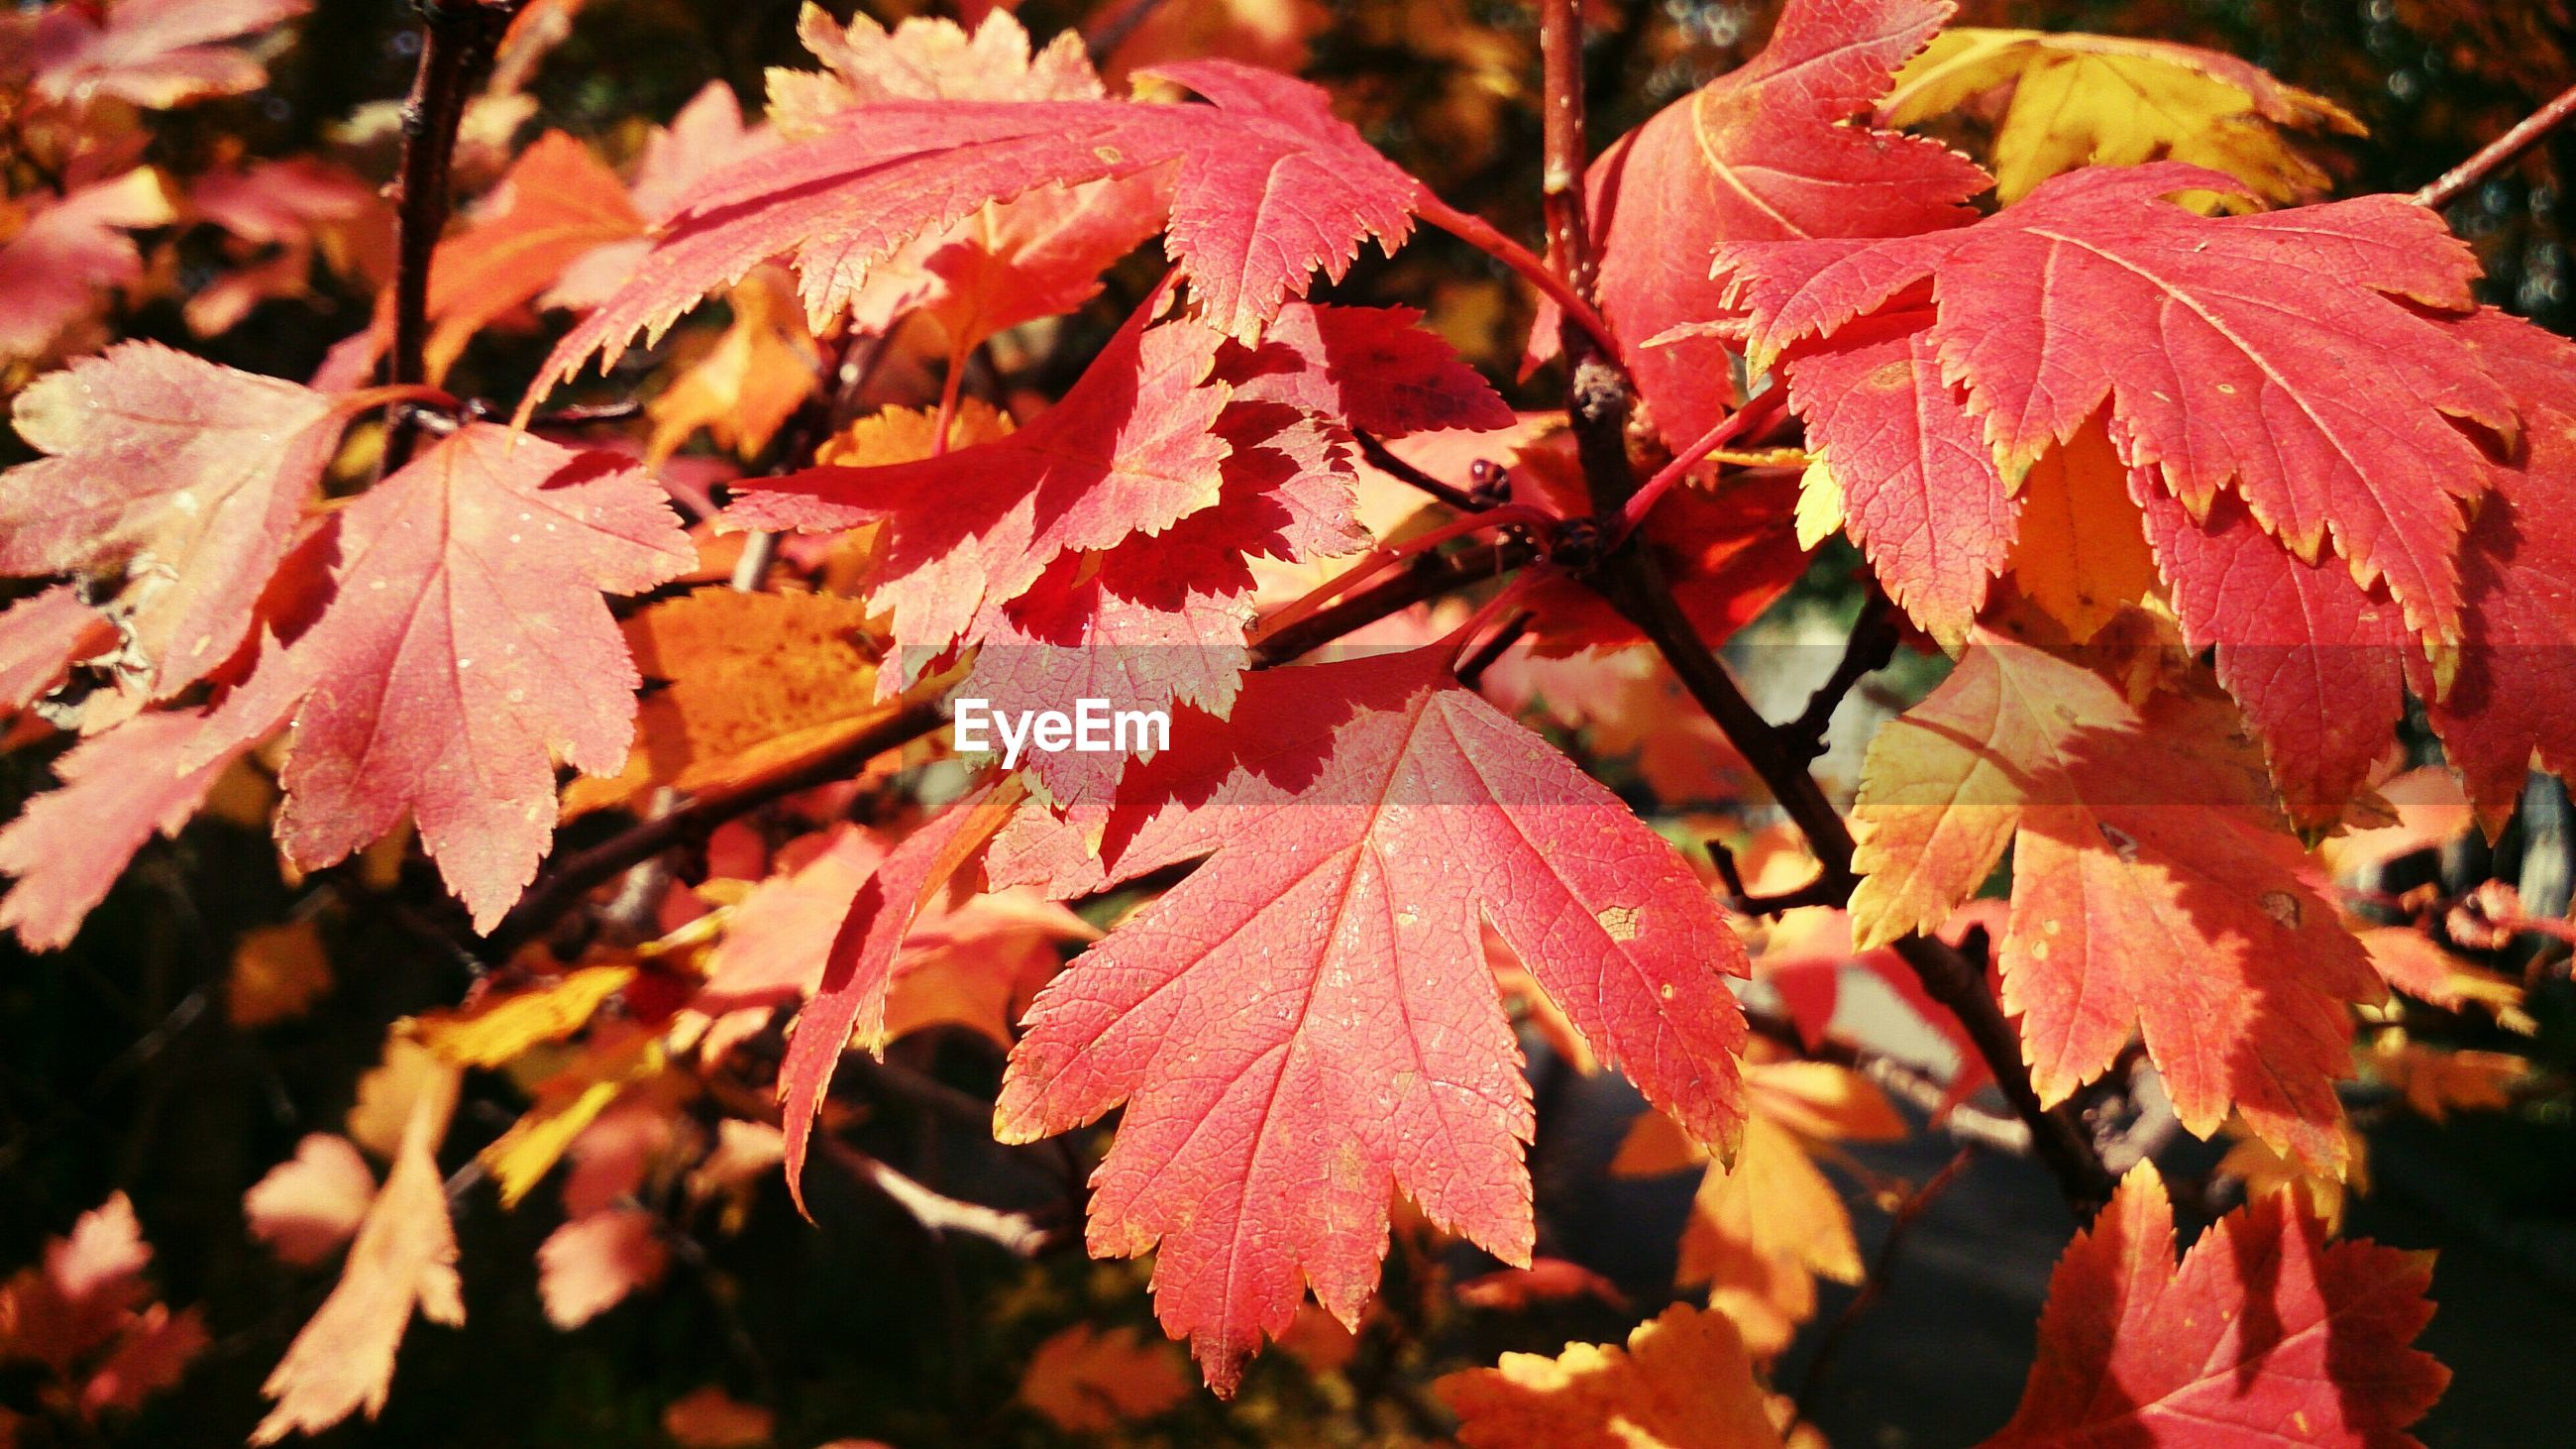 leaf, autumn, change, season, leaves, nature, close-up, red, growth, focus on foreground, beauty in nature, maple leaf, leaf vein, branch, tree, tranquility, selective focus, day, outdoors, no people